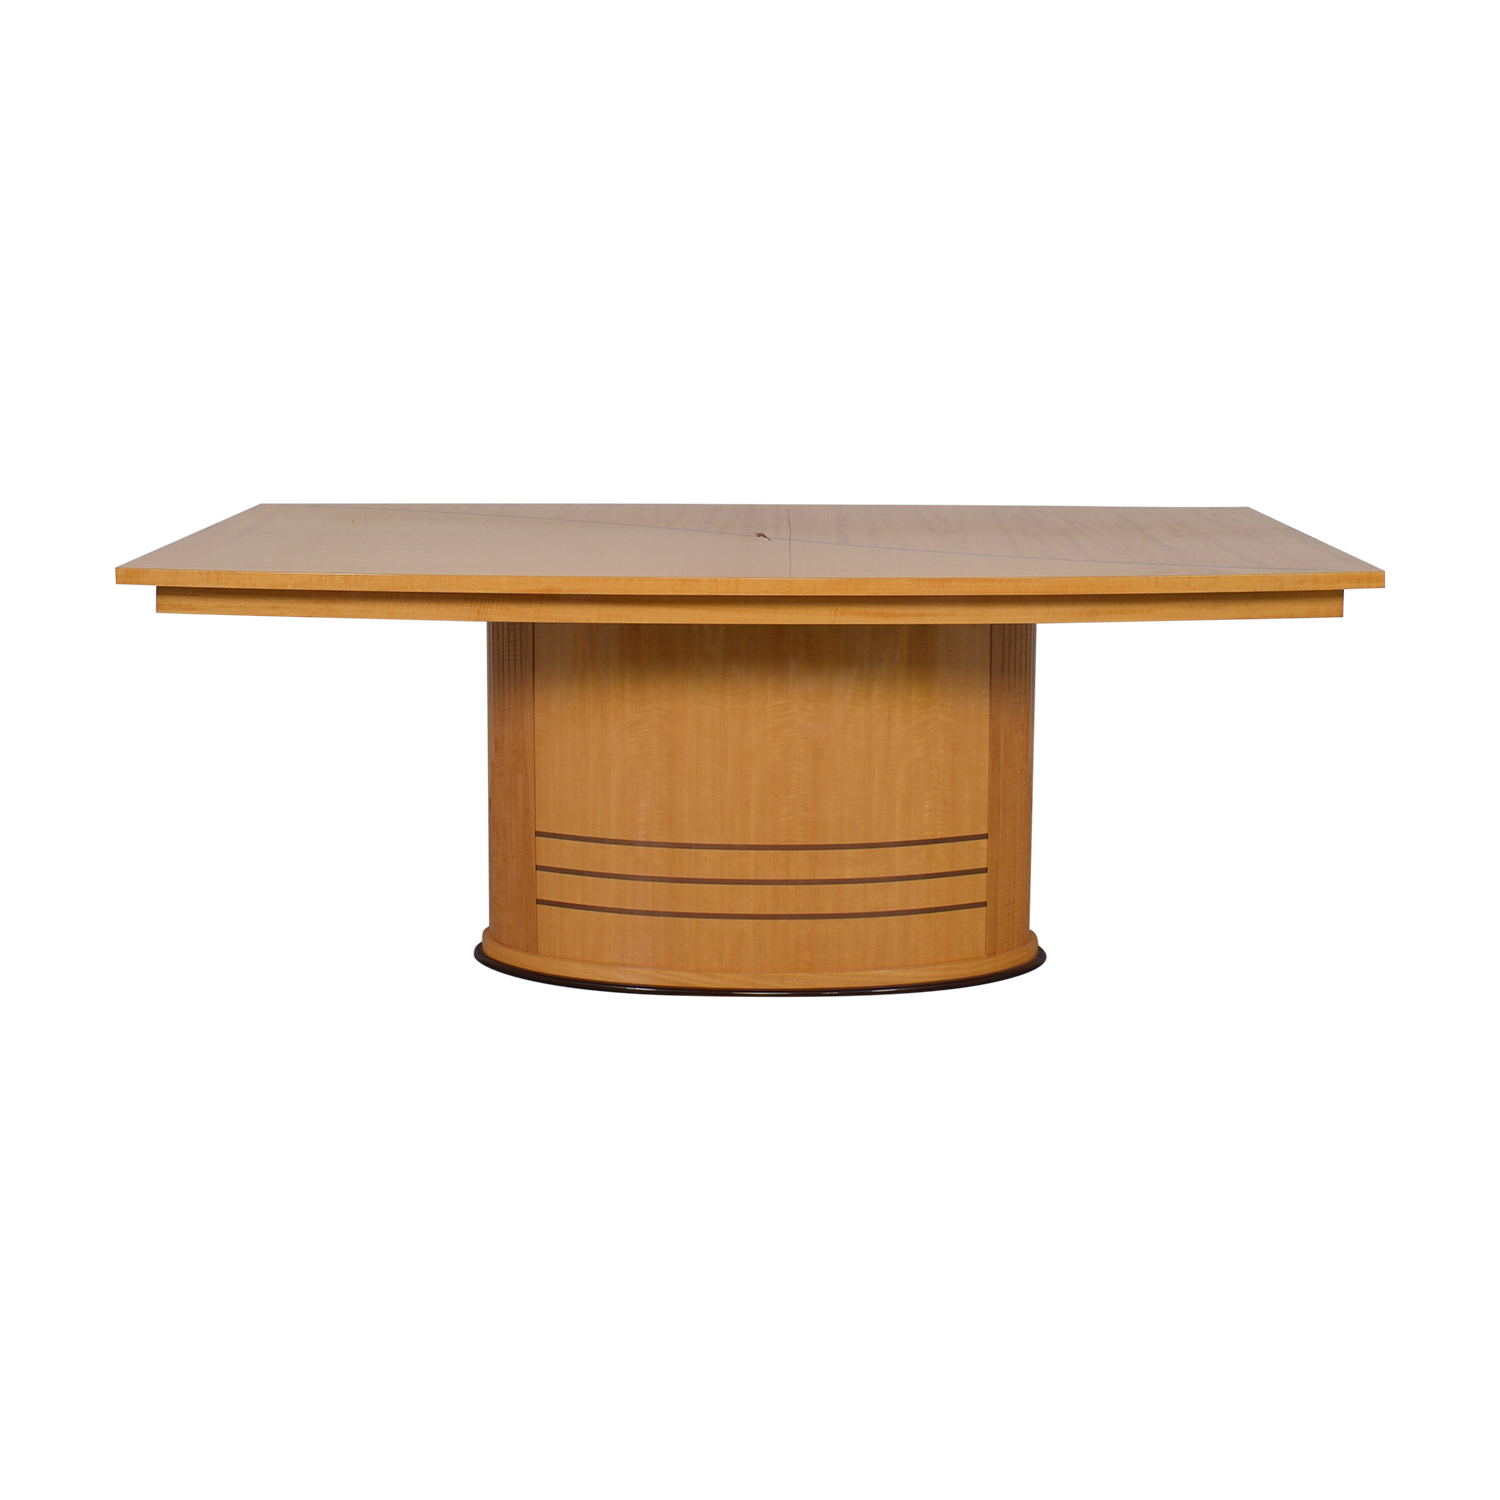 Ello Furniture Inlay Table / Dinner Tables